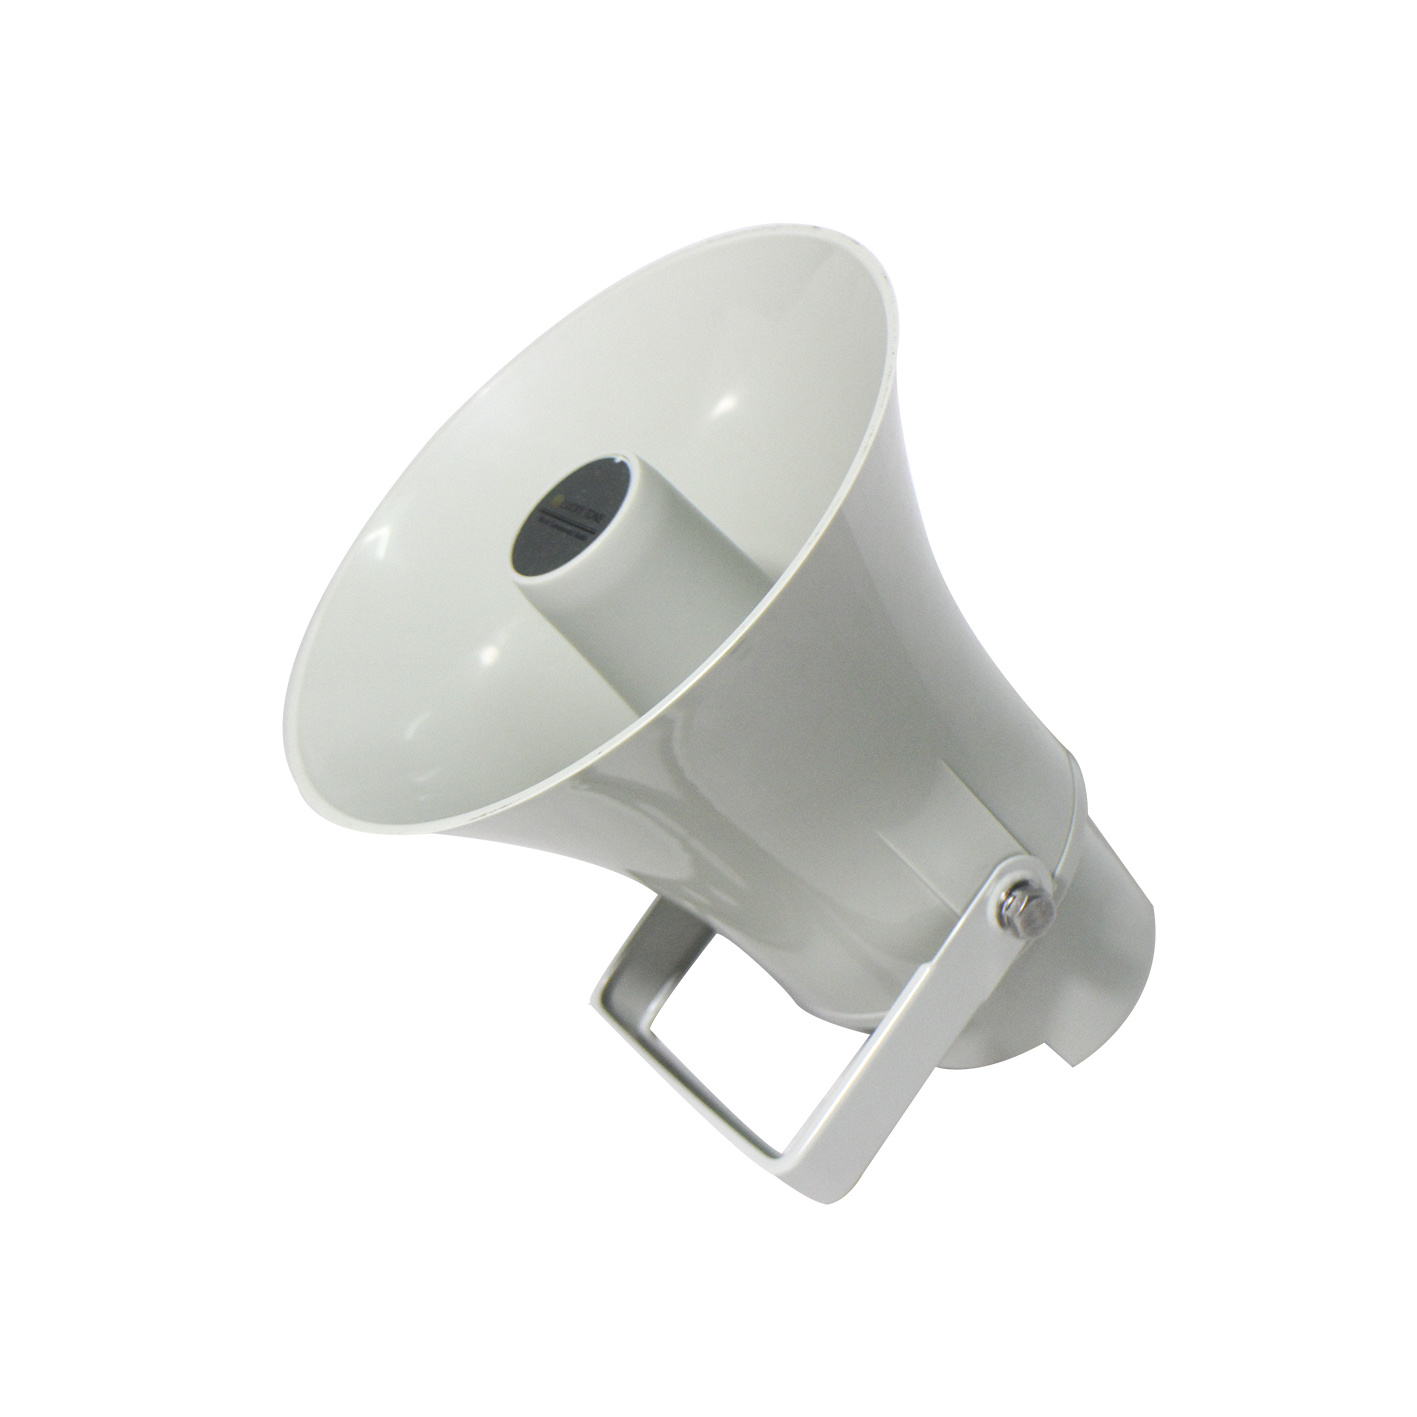 NEW PA Horn.4 Outdoor Paging /& Public Speaking.Waterproof Speaker.w// mount.8/""